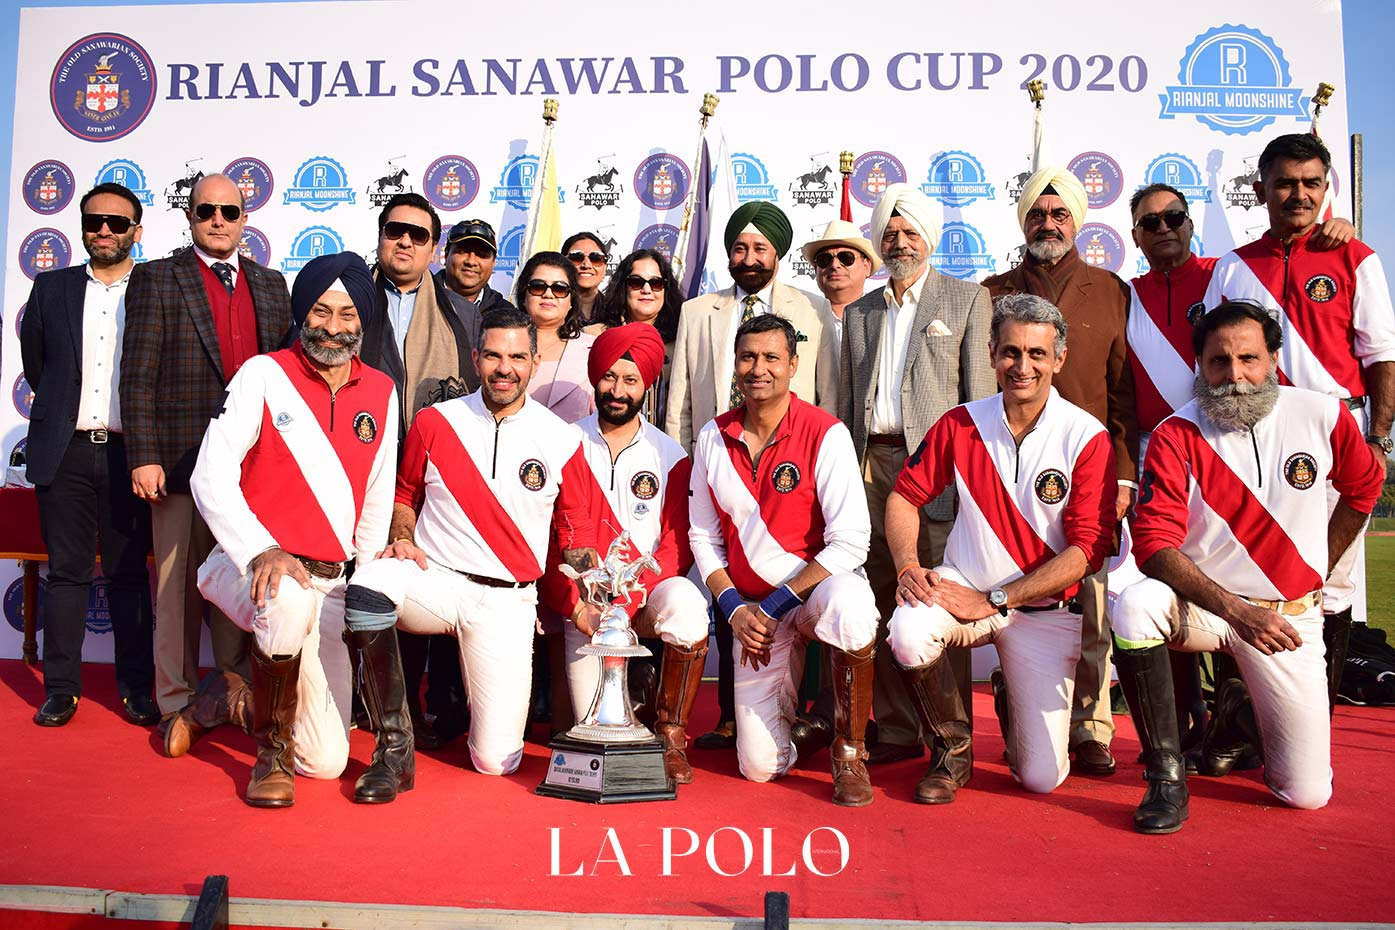 The Sanawarians Made A Comeback Through The Rianjal- Sanawar Polo Cup 2020